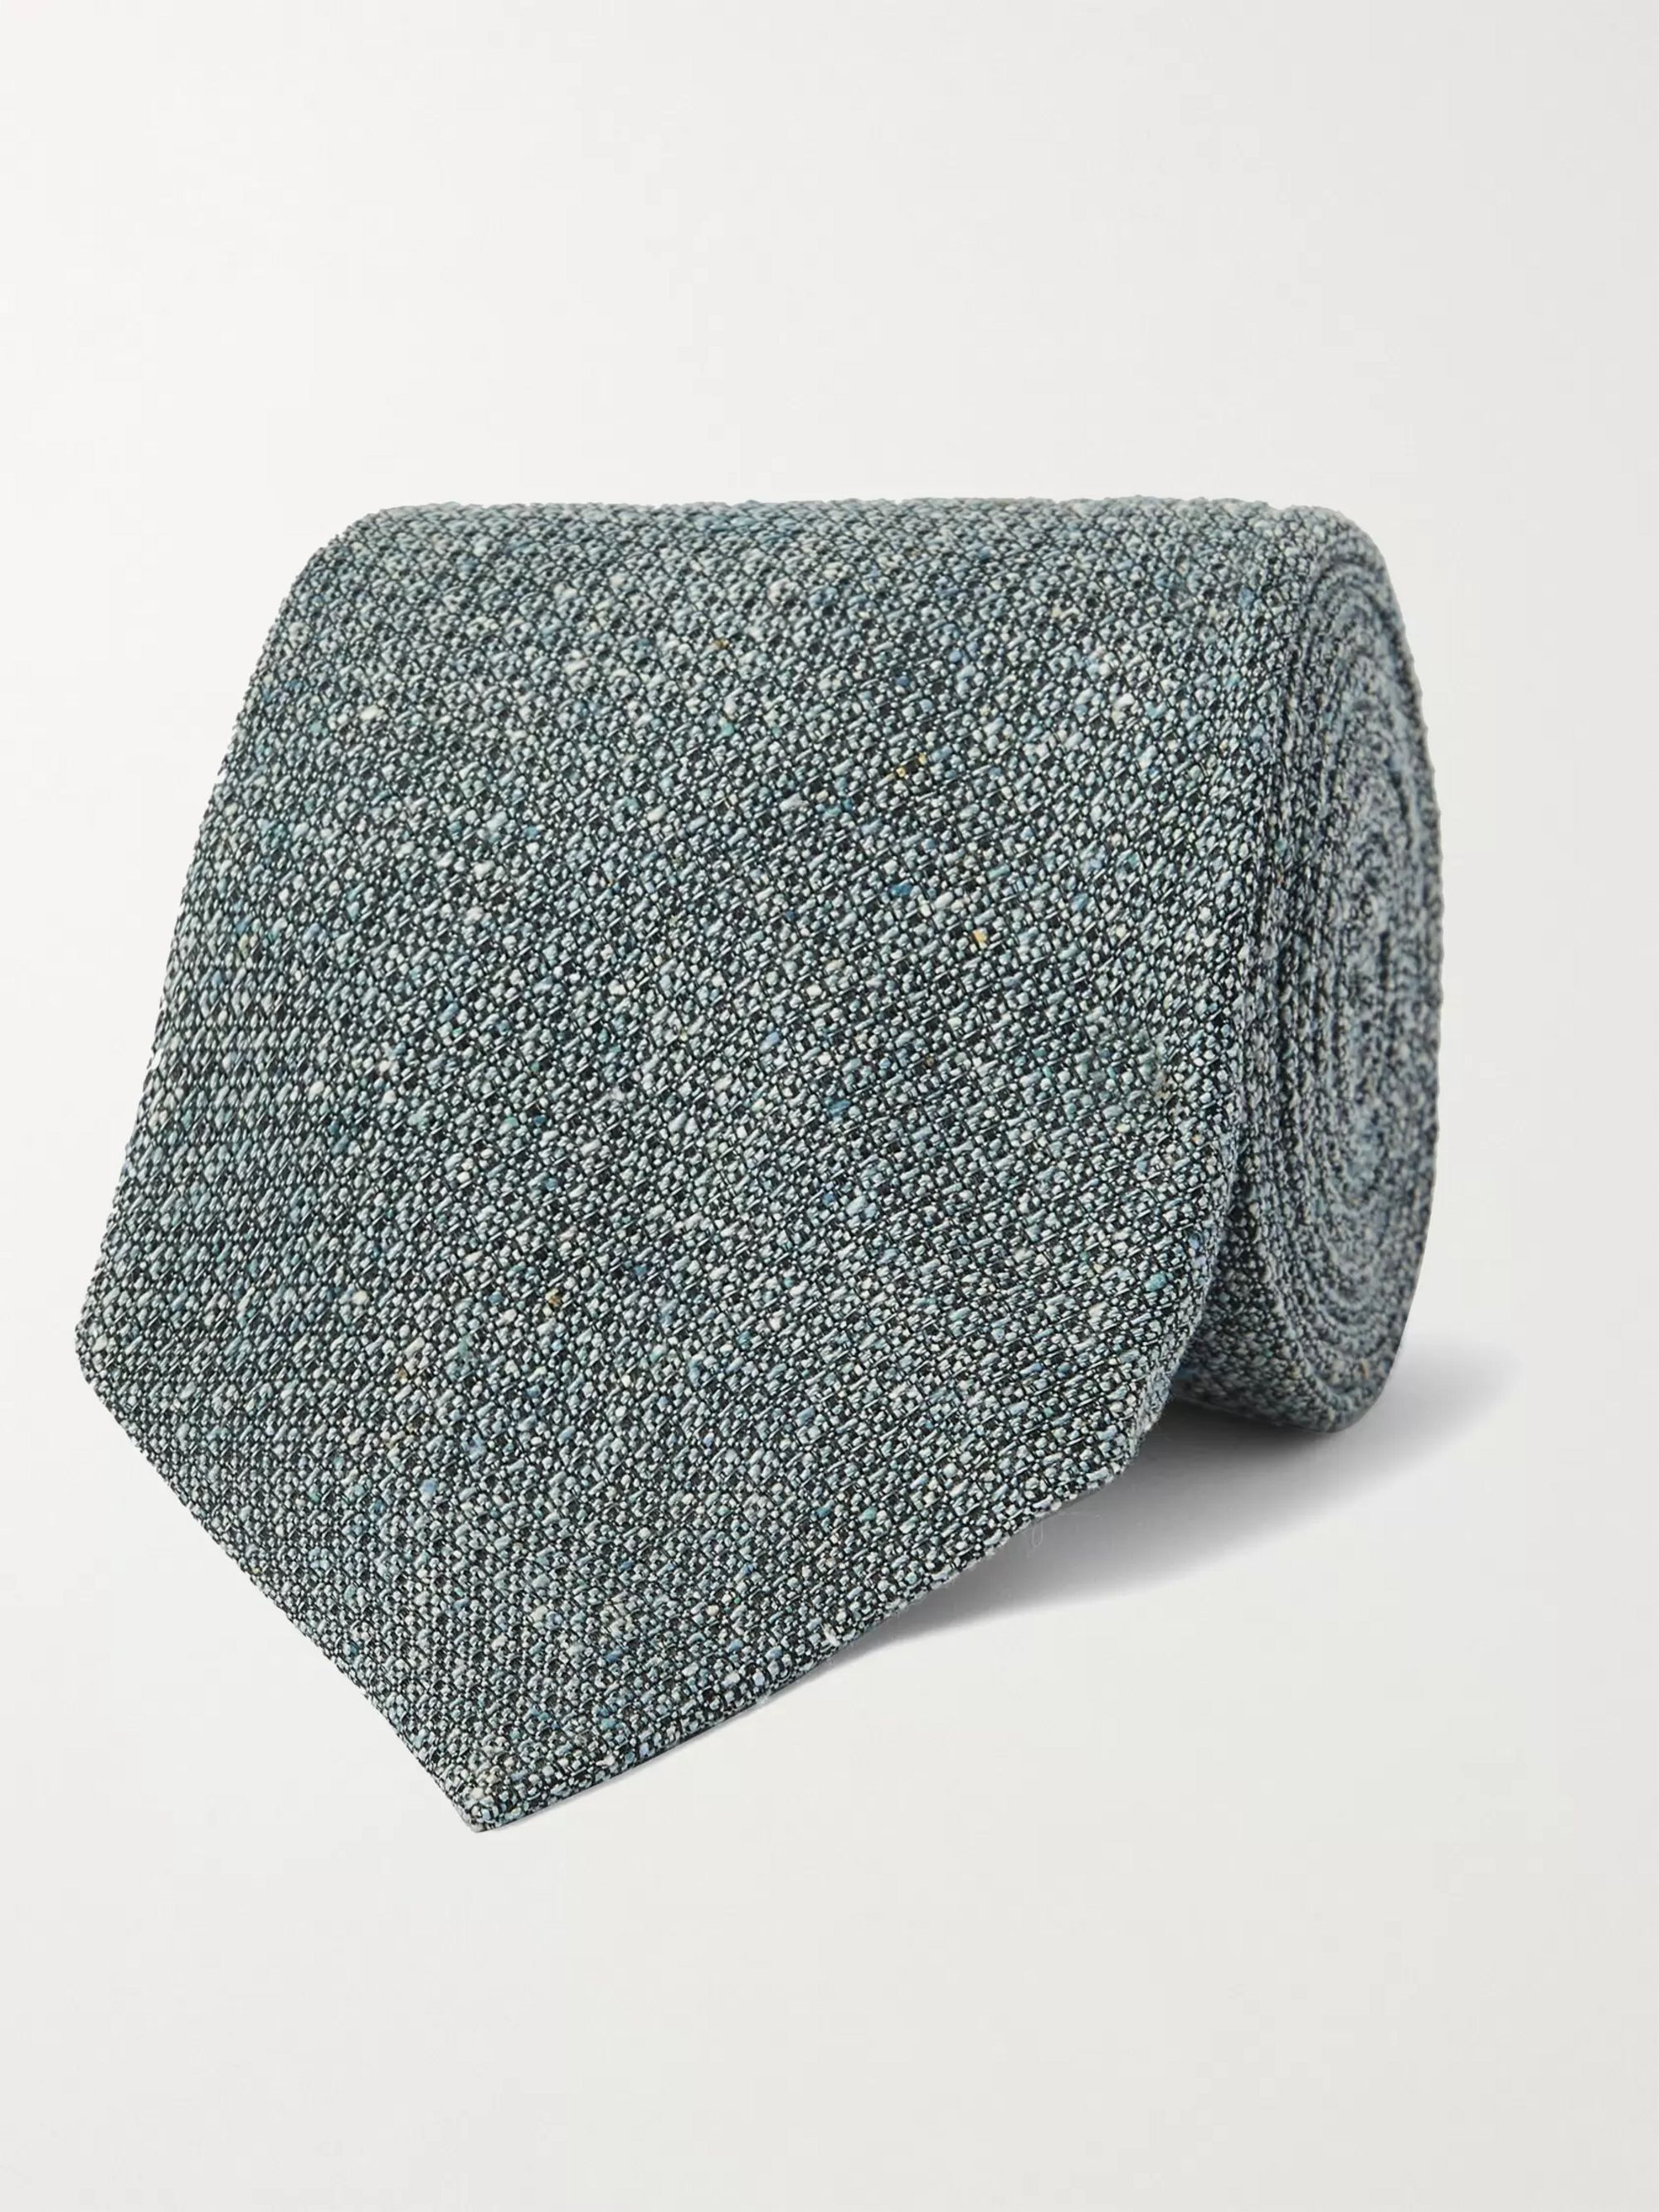 Purdey Silk-Jacquard Tweed Tie,Light blue